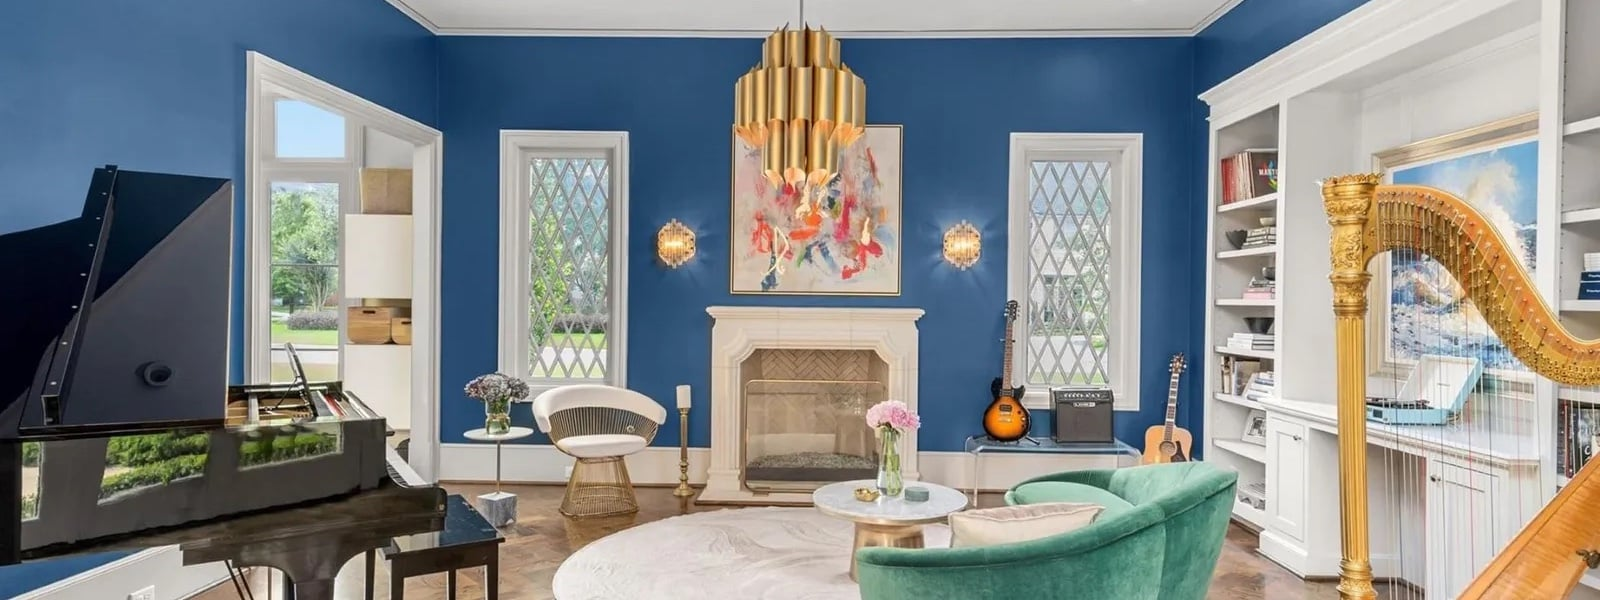 The Bold And The Beautiful: 5 Homes With Eye-Catching Interior Paint